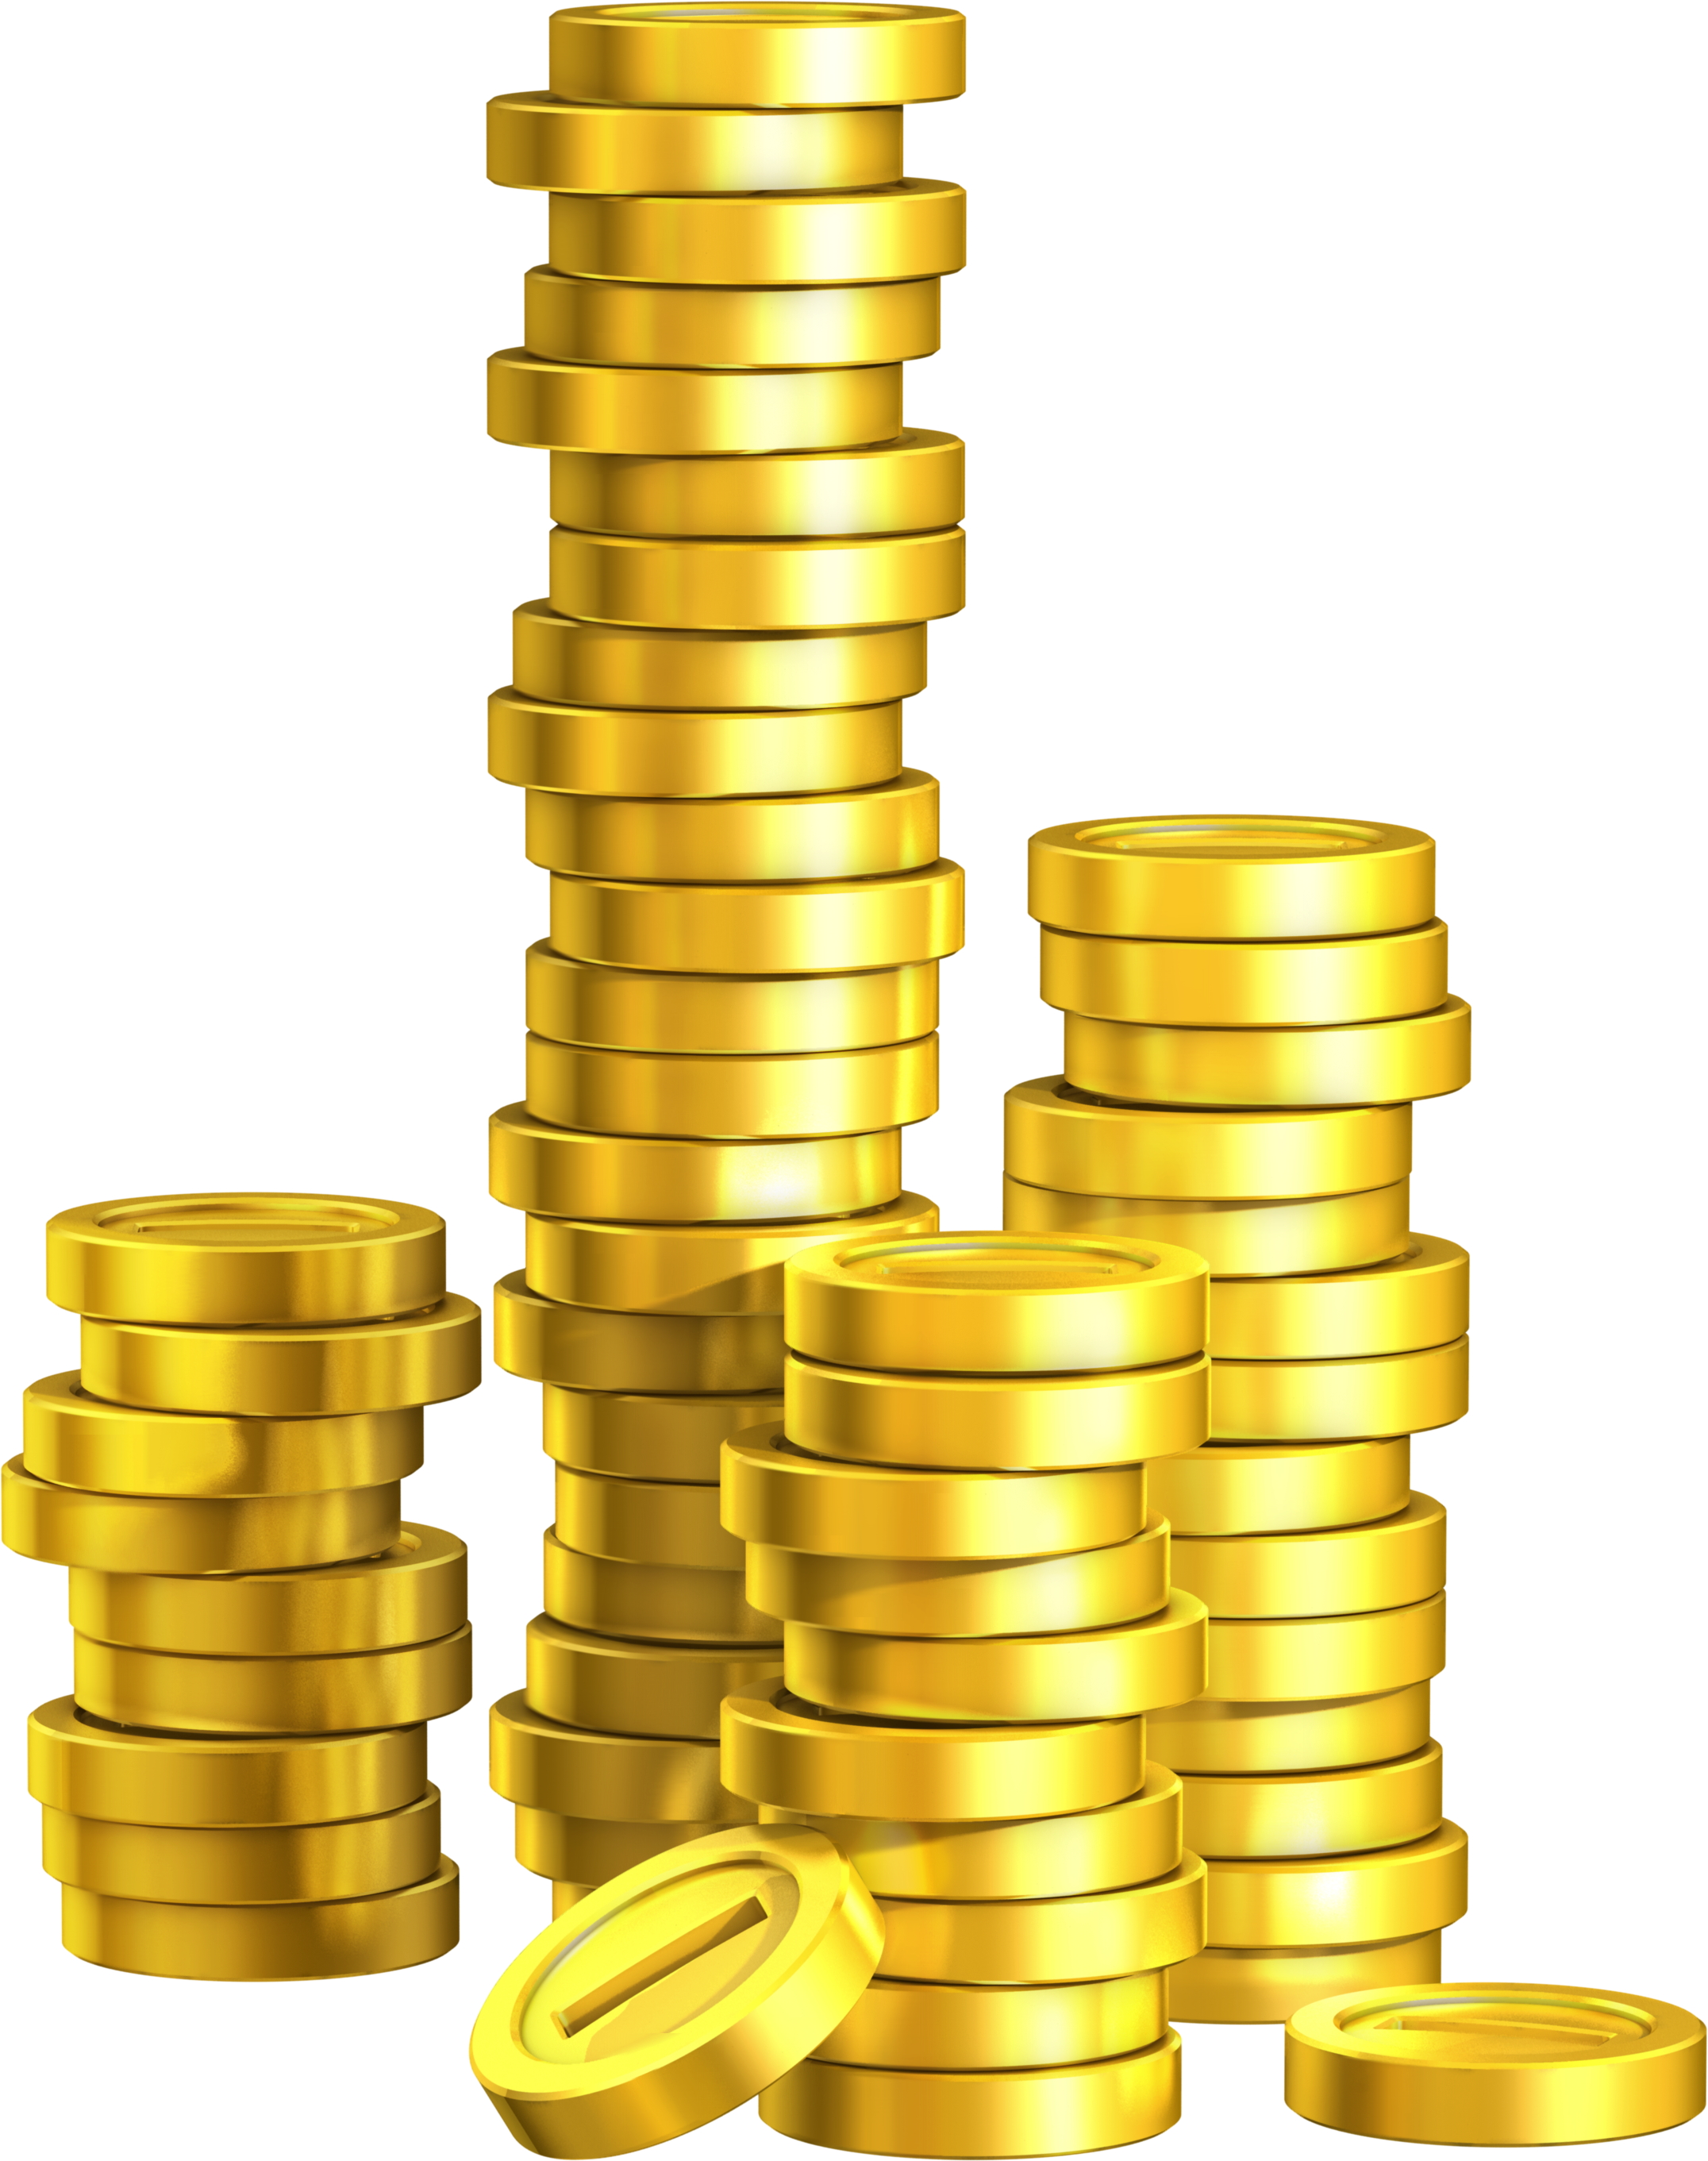 Pile of gold coins png. Images free download image